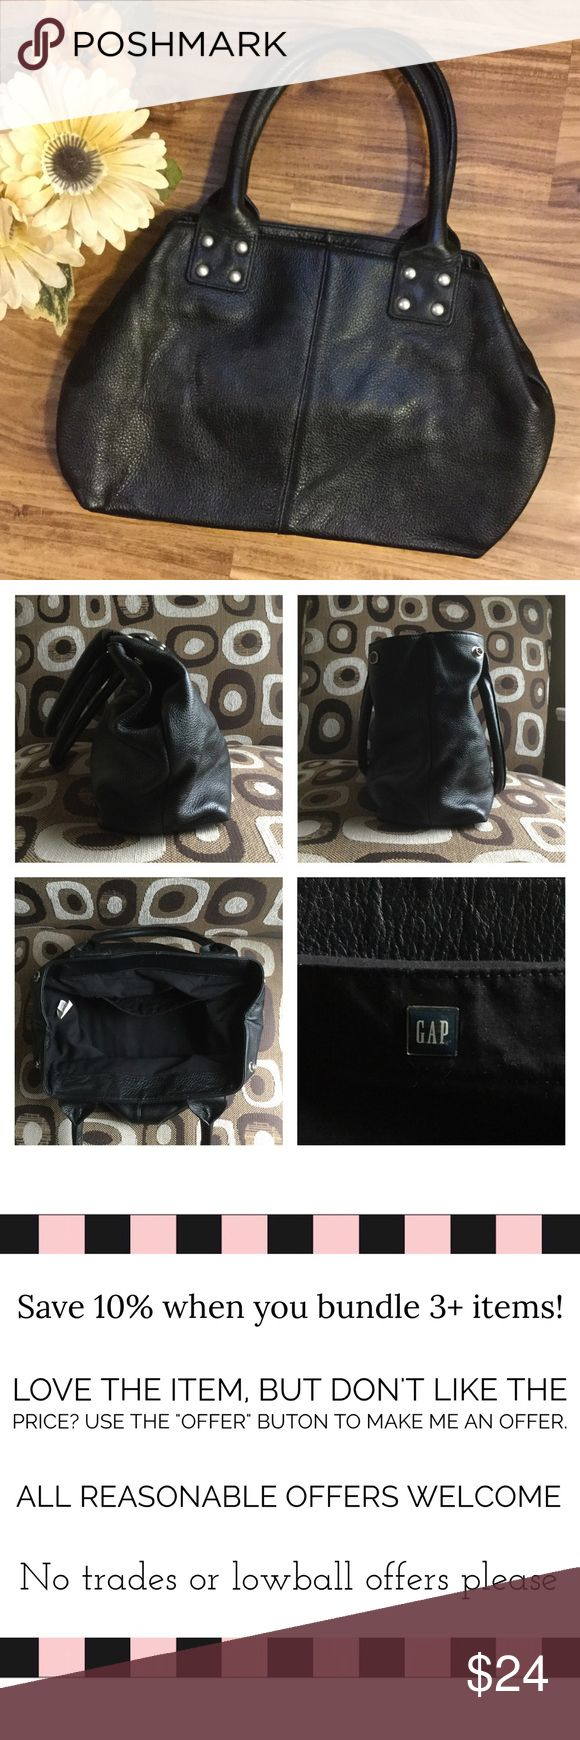 """*SALE* Black Leather Gap Purse 100% leather black Gap purse. A great basic essential! Leather is super soft with nice studded detail. It features side snaps as well to expand it's capacity. 9"""" H x 14"""" L (bottom) x 9"""" L (top) x 6"""" W (unsnapped). Has 1 inside pocket. GAP Bags Satchels"""